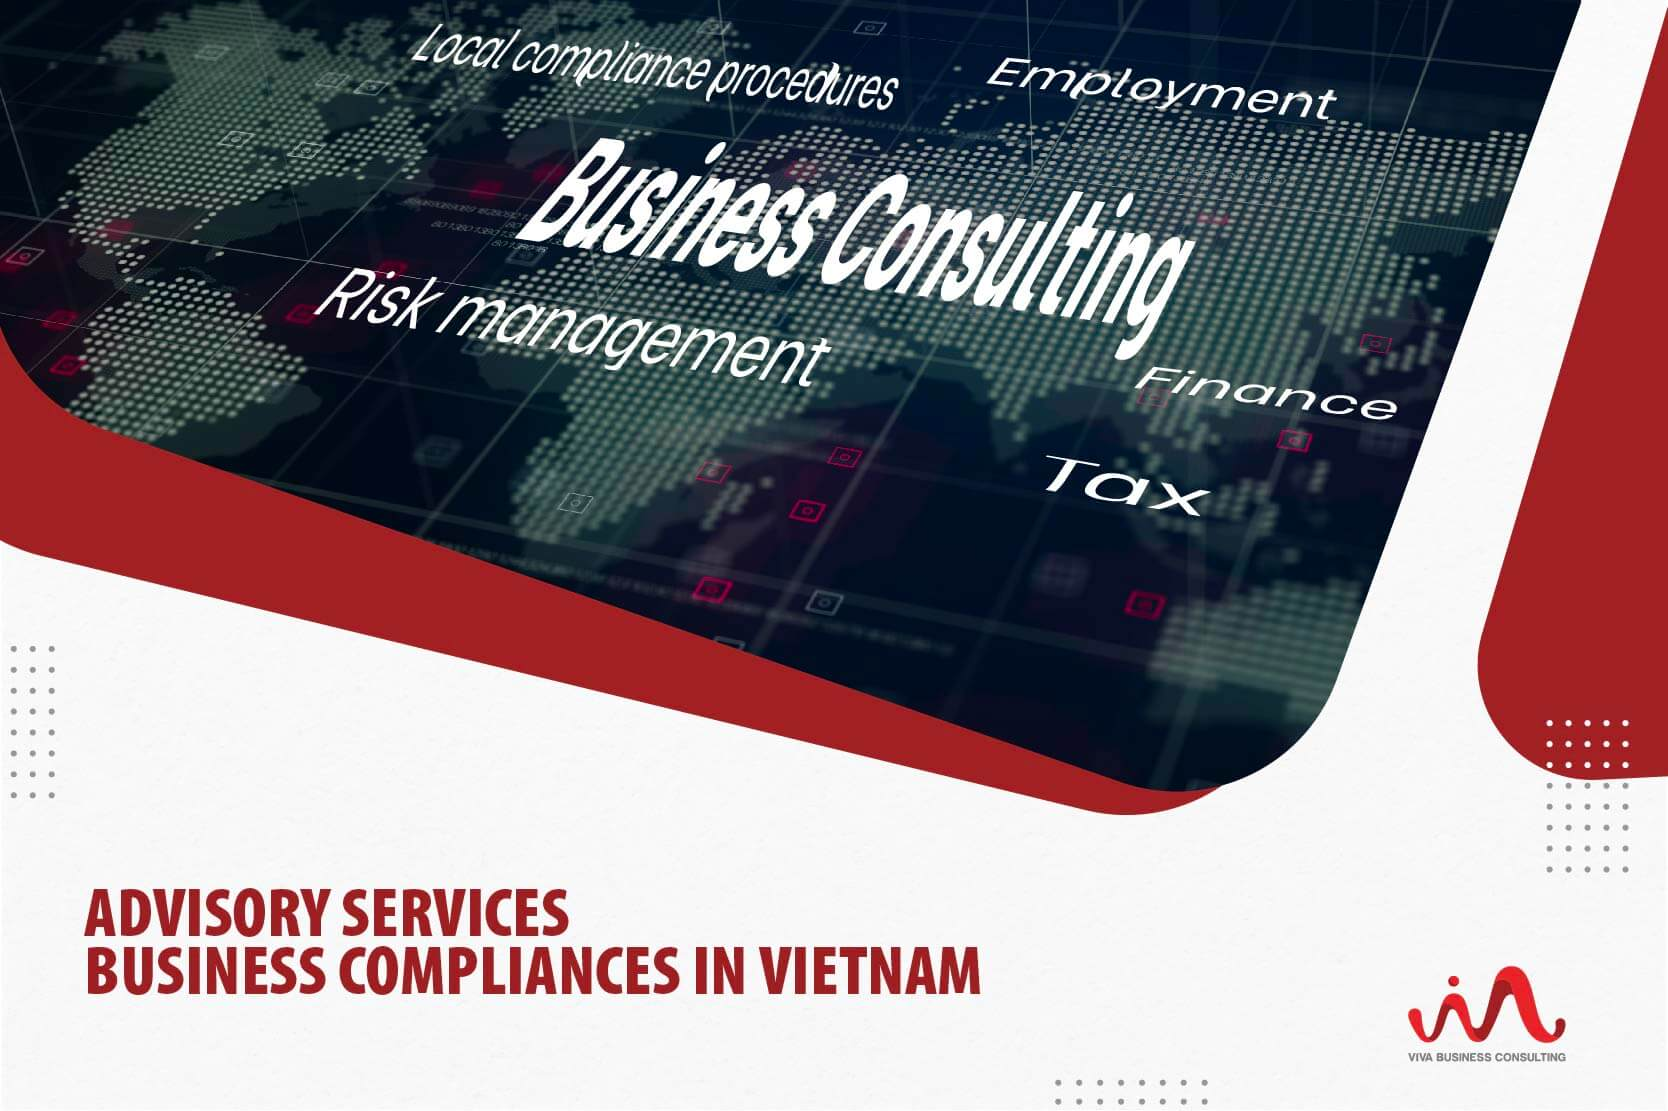 Advisory Services | Business Compliances in Vietnam